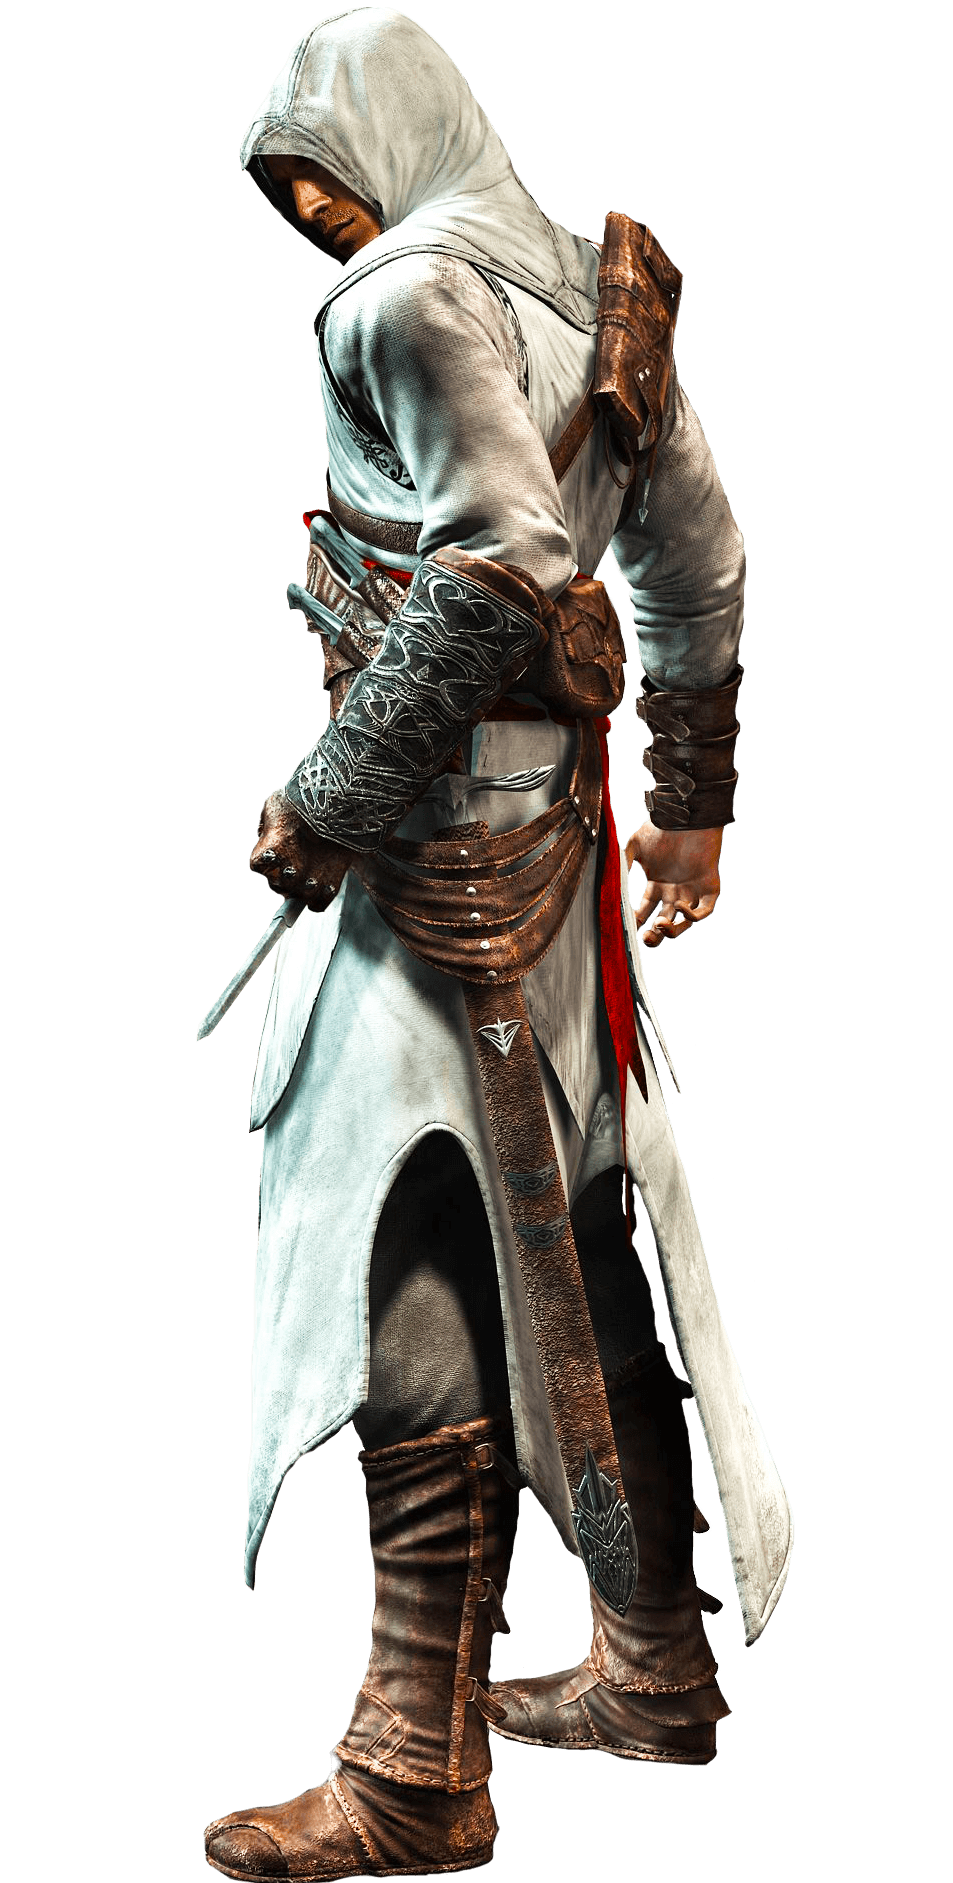 Assassins Creed Sideview - Assassins Creed, Transparent background PNG HD thumbnail